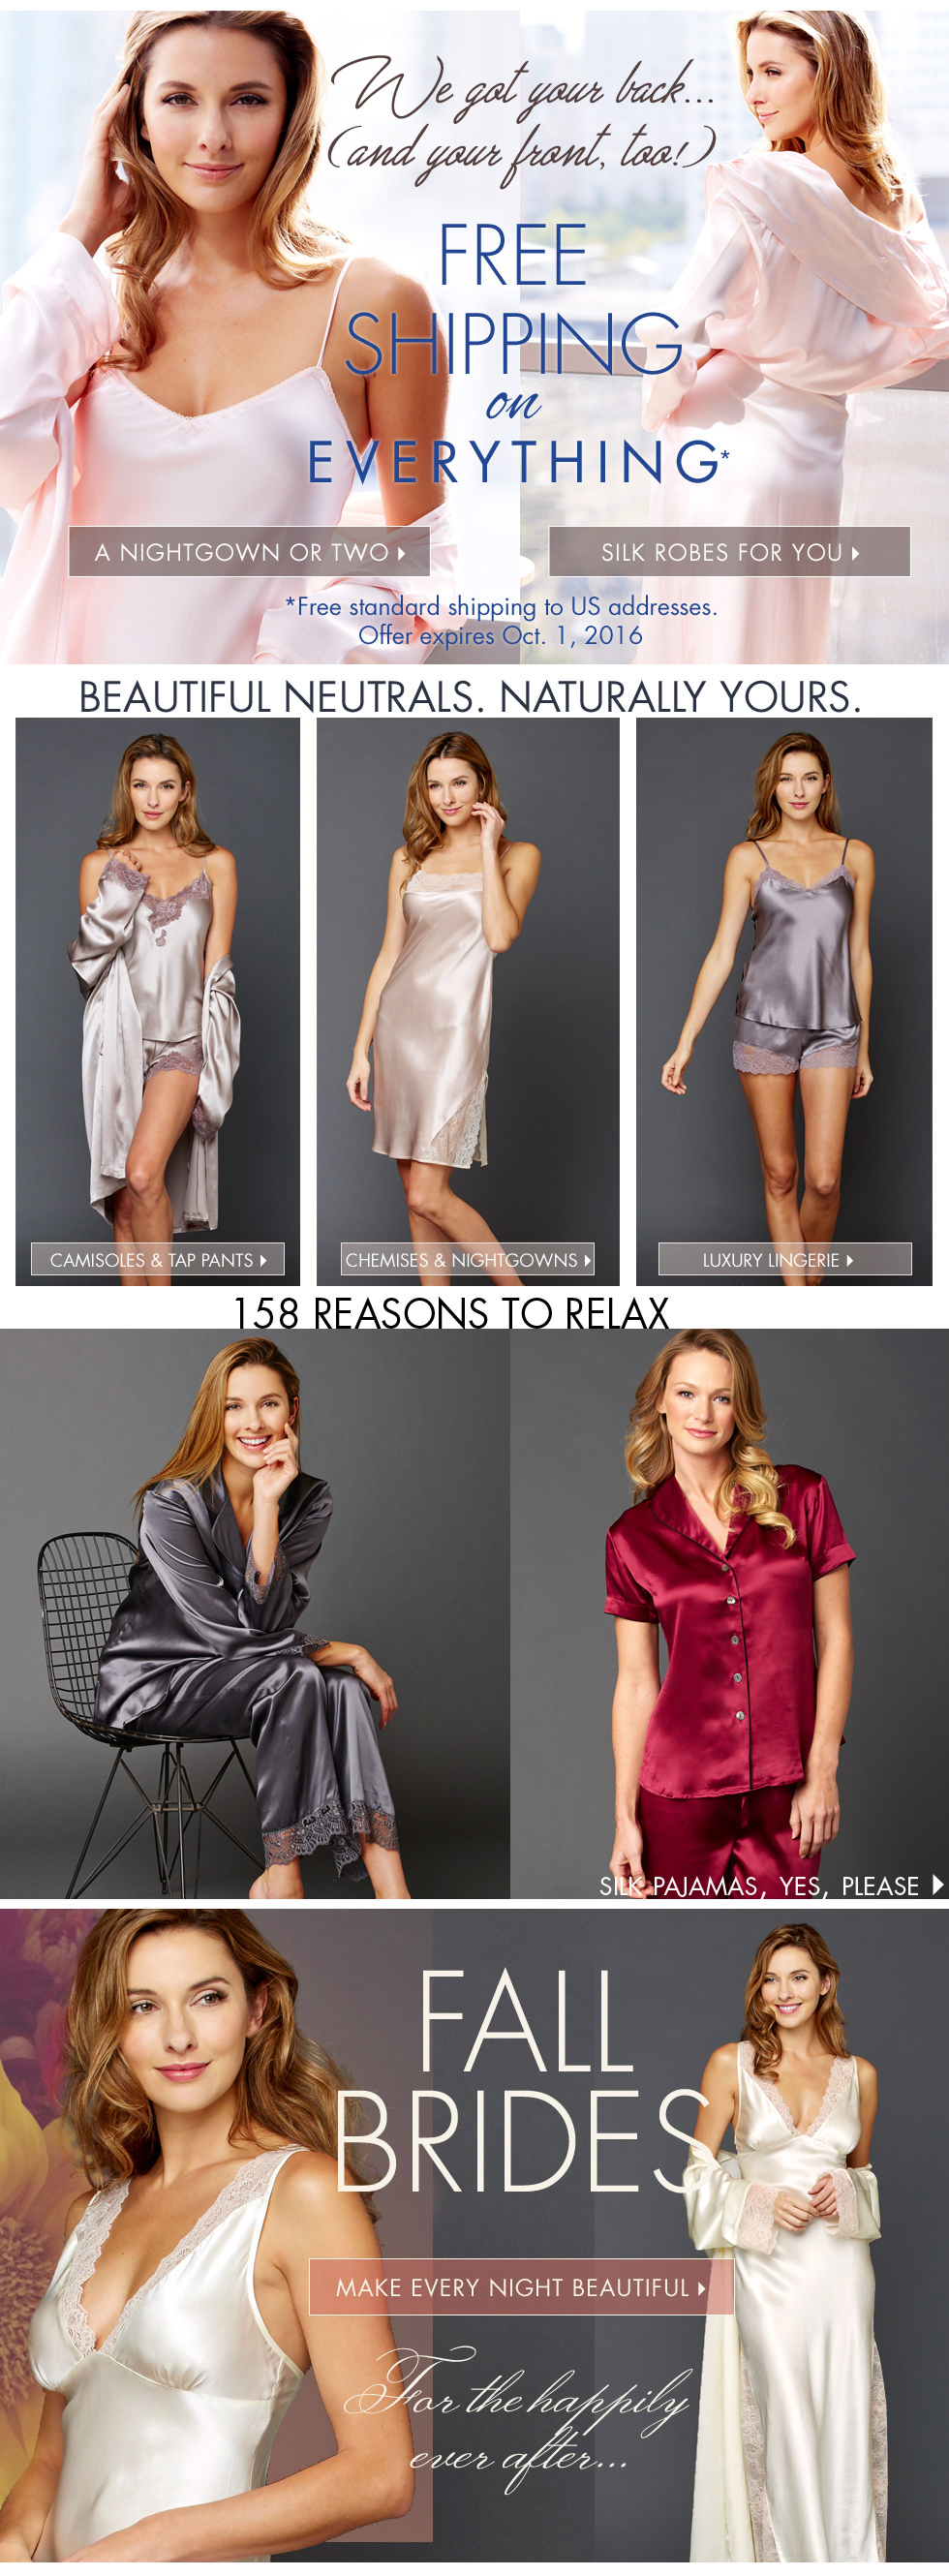 luxury sleepwear and lingerie - ships for free